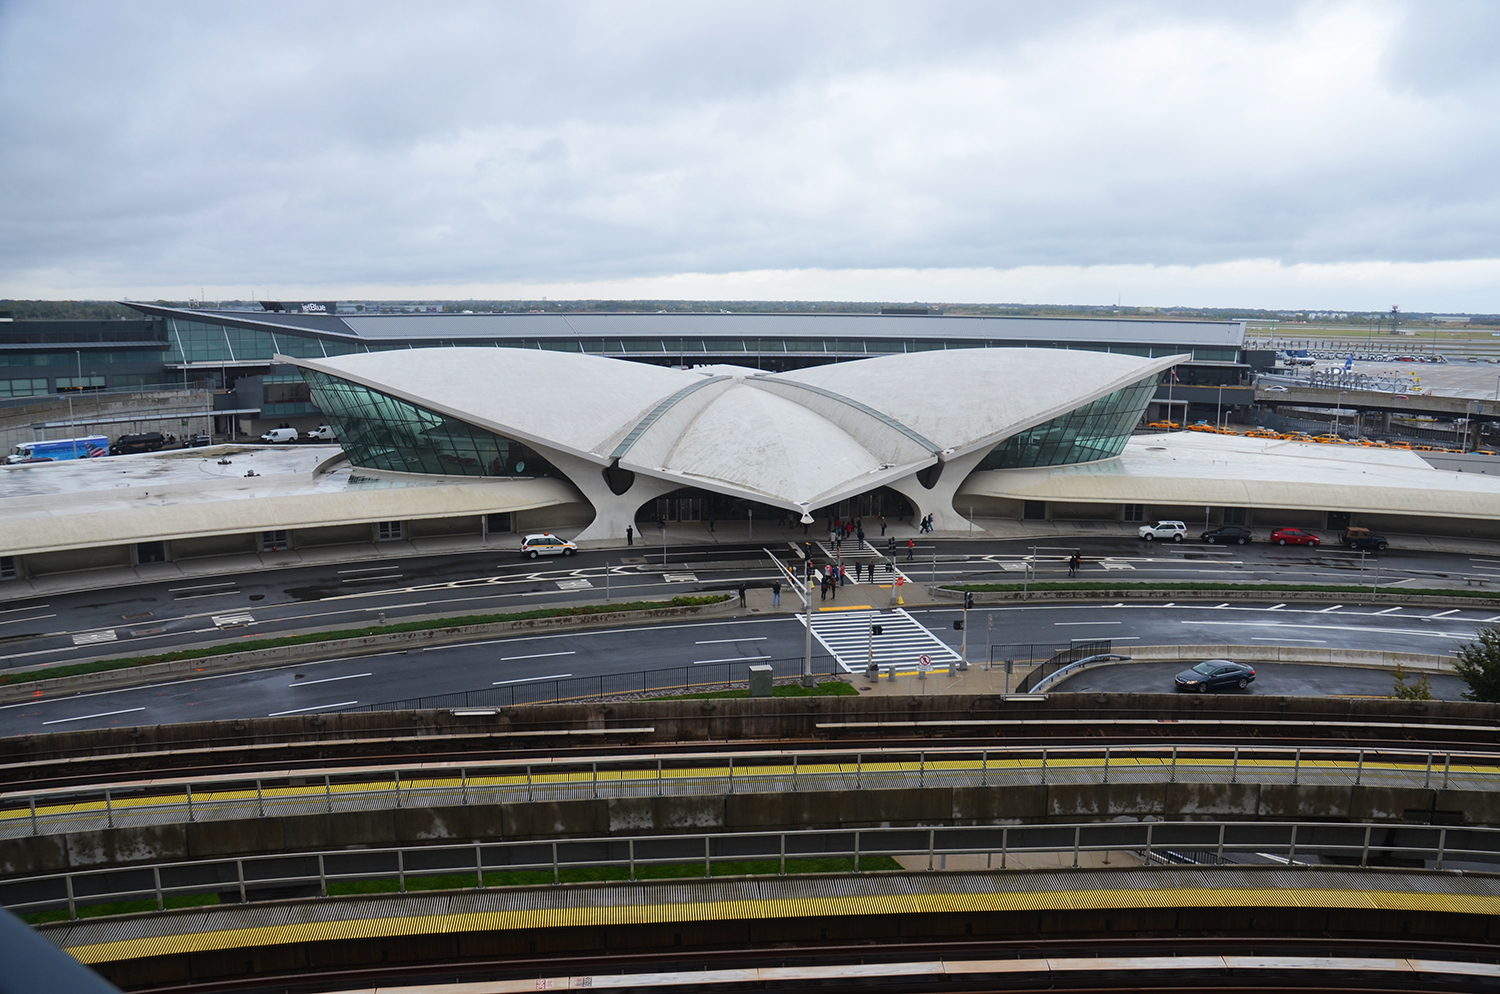 The TWA Flight Center with JetBlue Airways Terminal 5 as seen in October 2014. Photograph by Evan Bindelglass